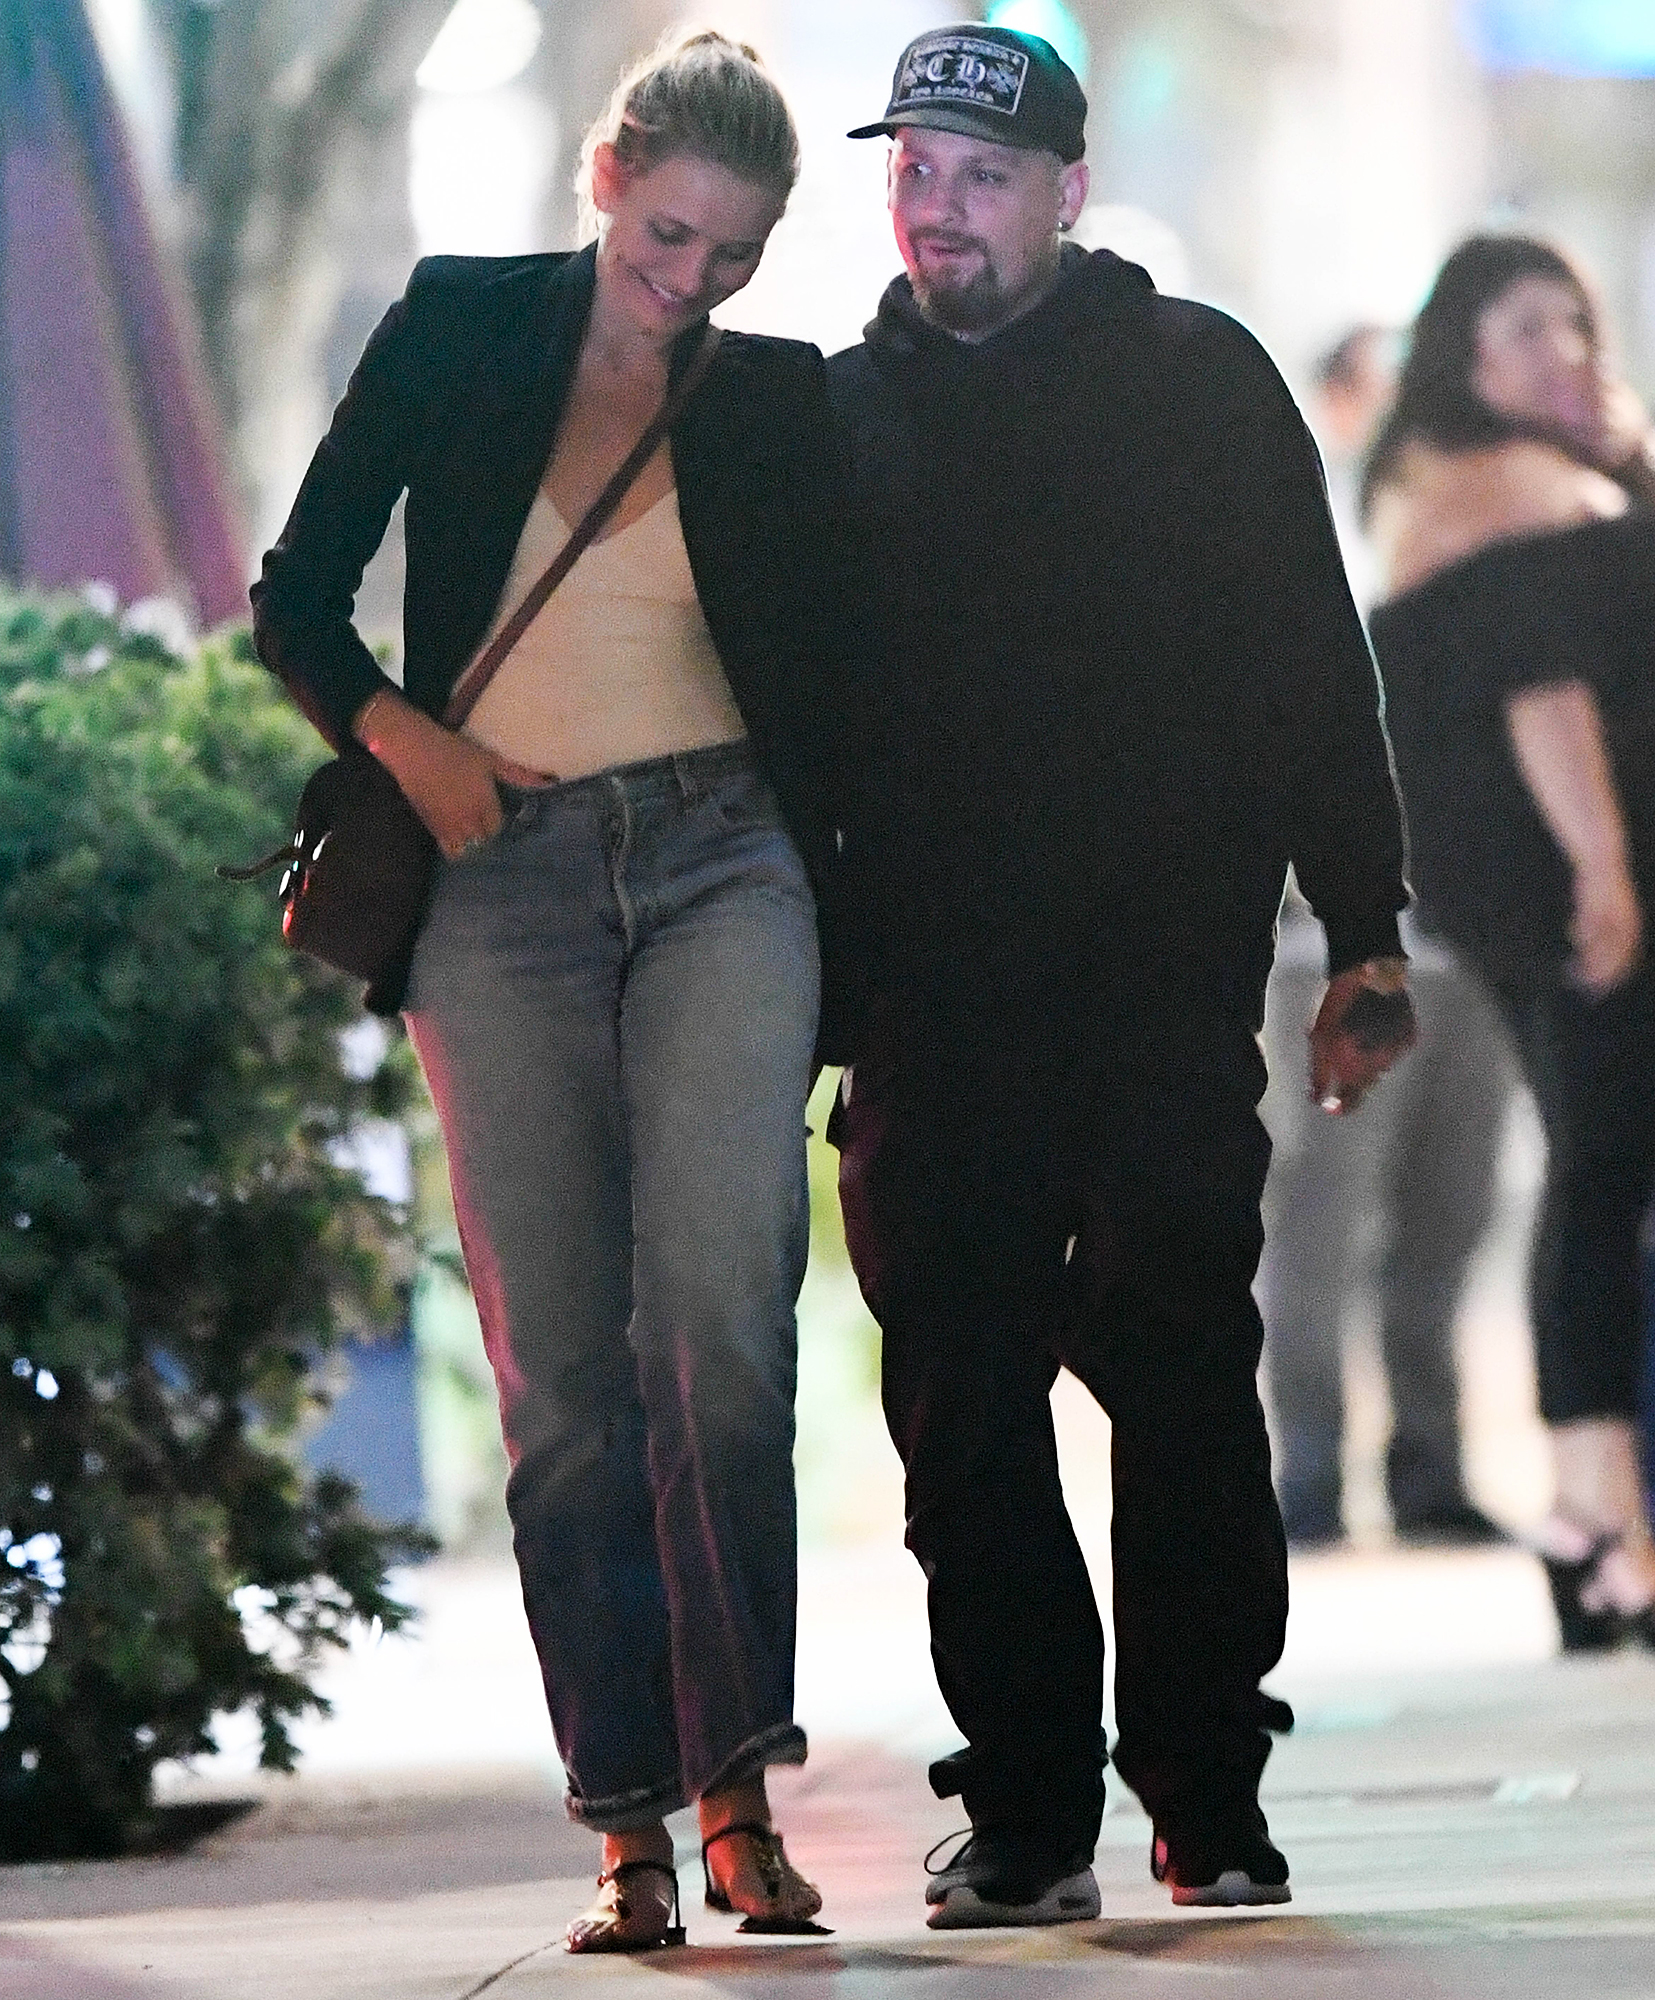 Joel-Madden-Shows-Love-for-Brother-Benji-Madden-and-Cameron-Diaz's-Baby-News-1